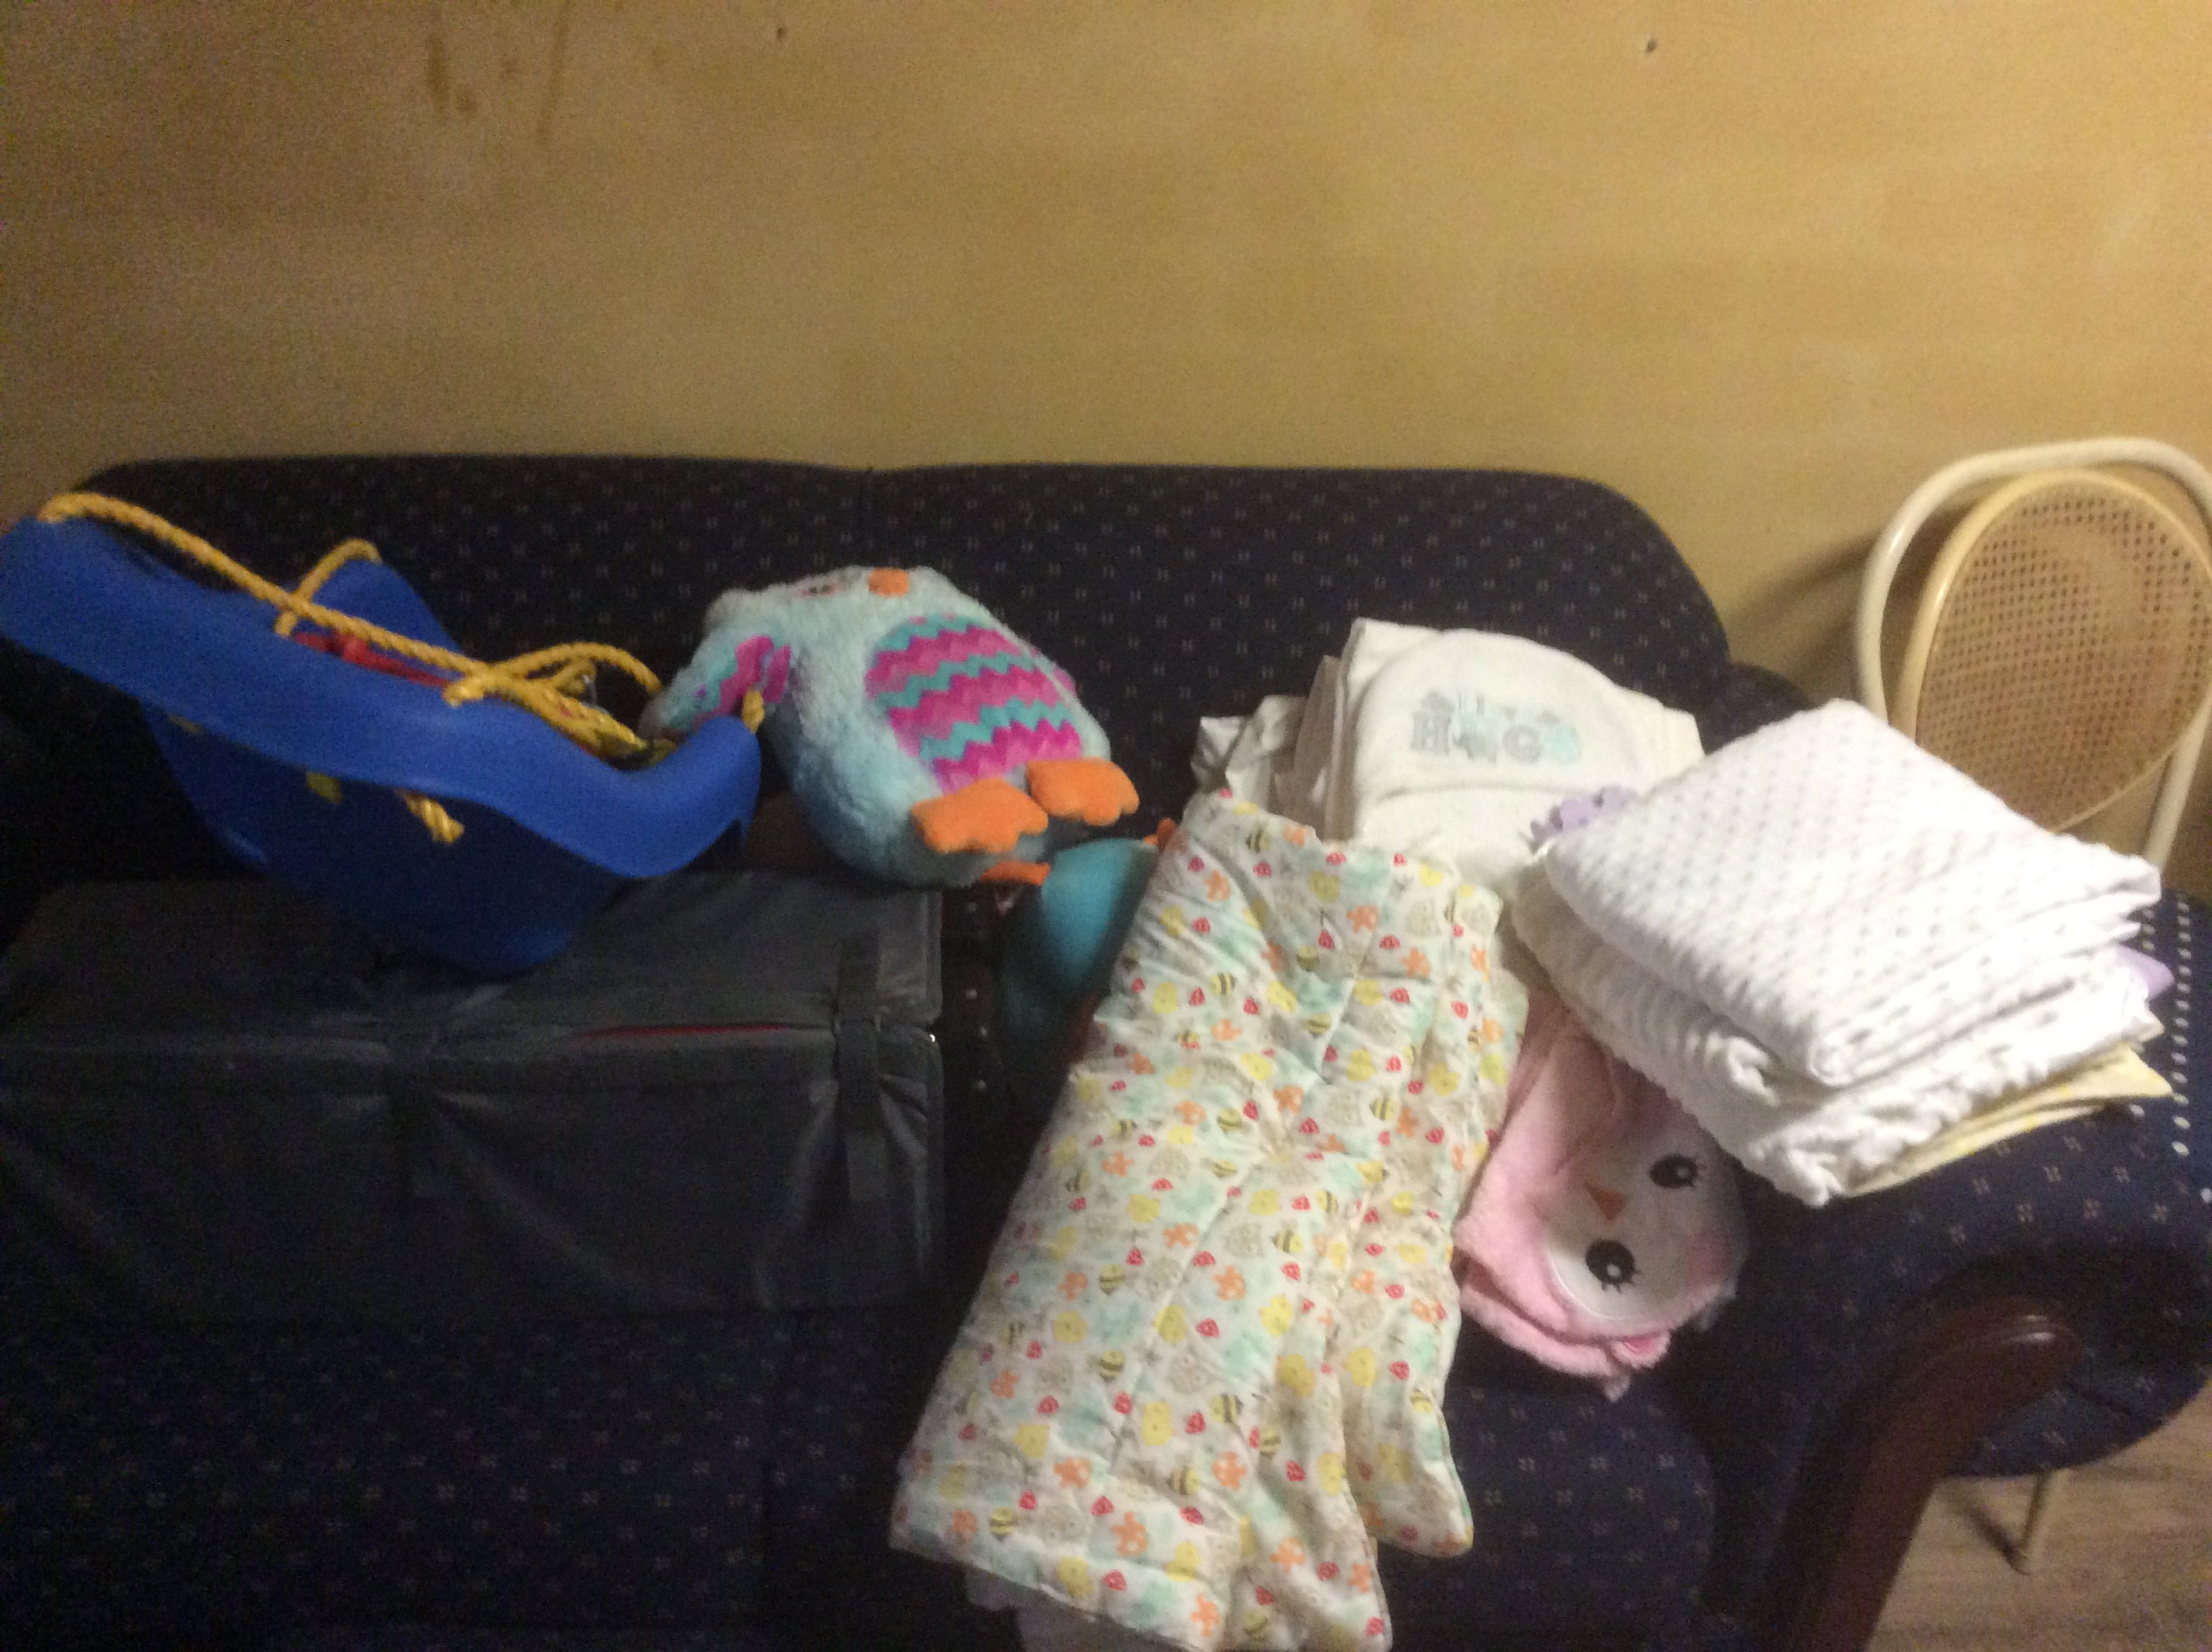 Baby Items Donated